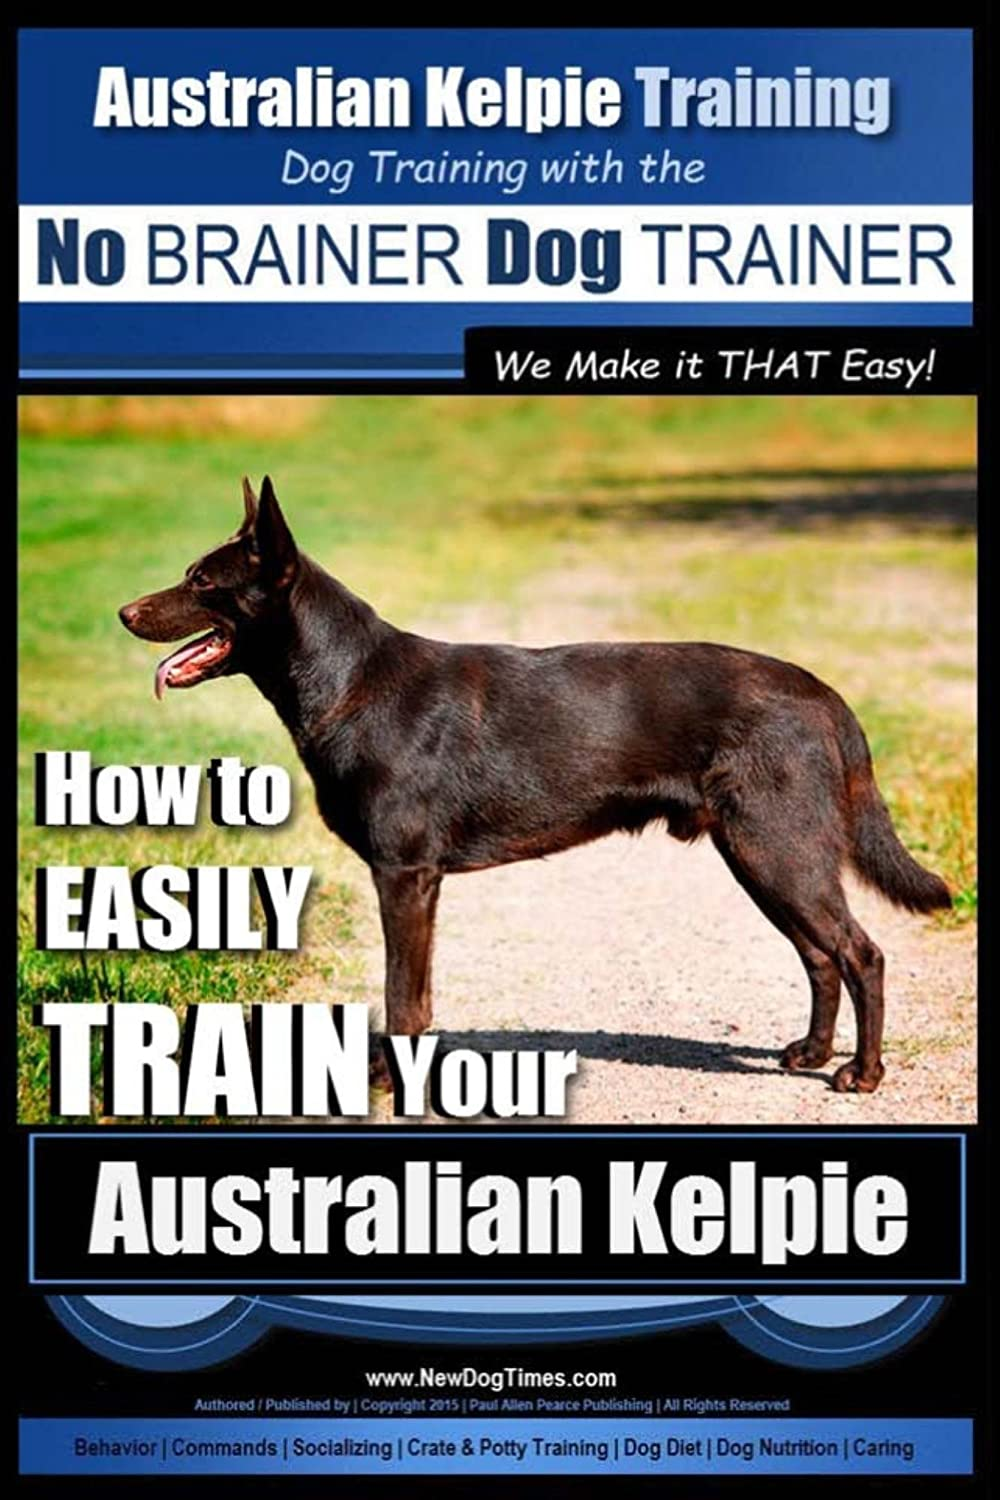 Australian Kelpie Training | Dog Training with the No